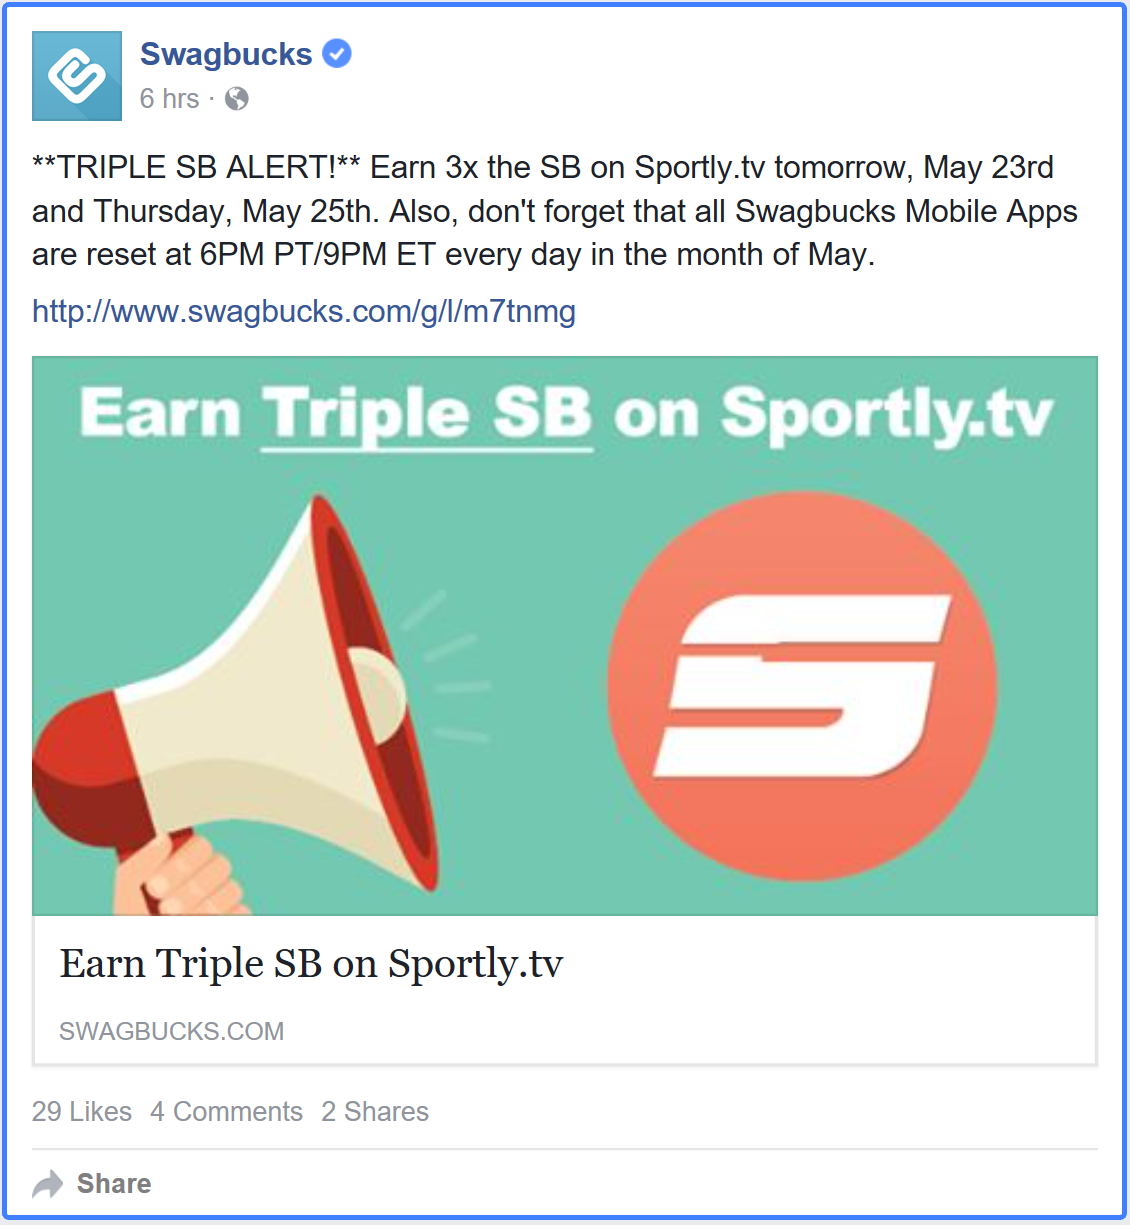 SwagBucks New Triple Swagbucks on Sportly.tv App Tuesday